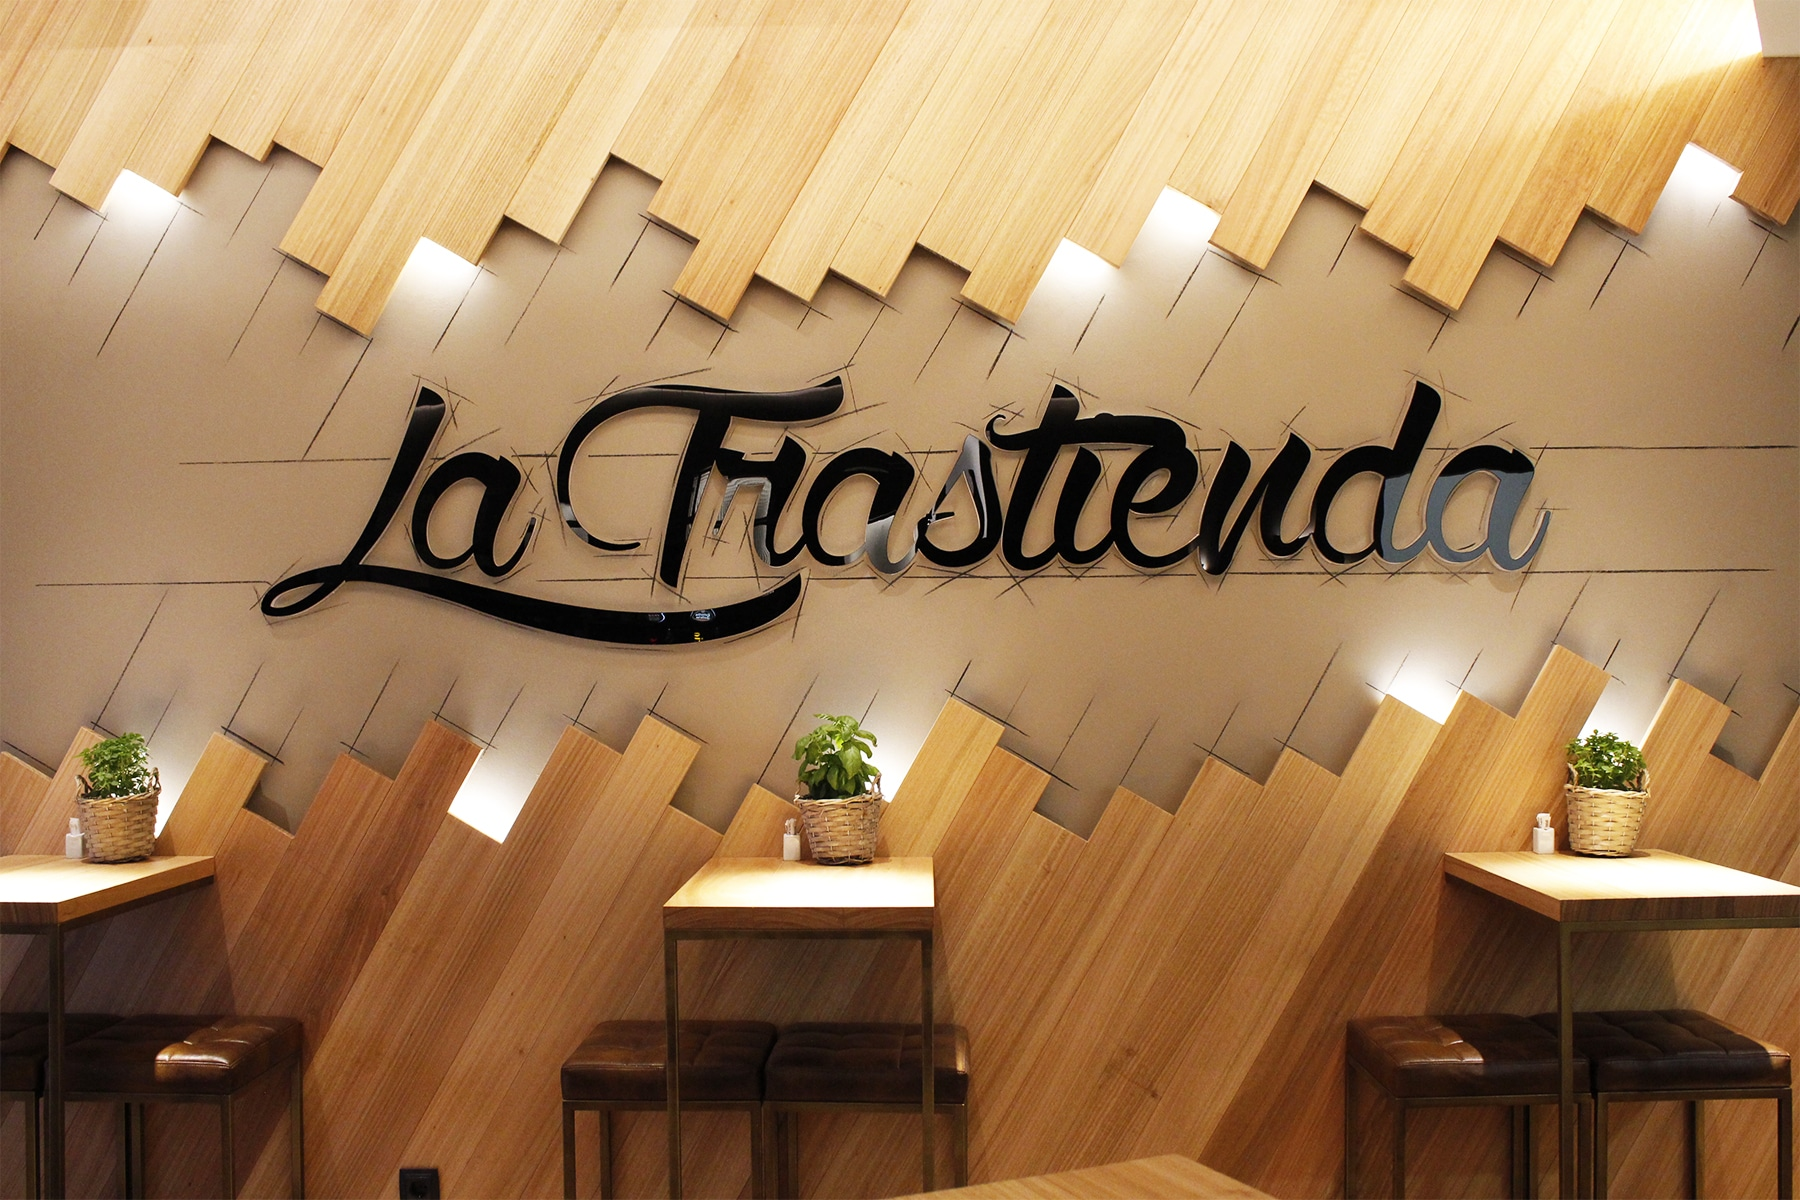 Gastrobar_LaTrastienda_Furniture